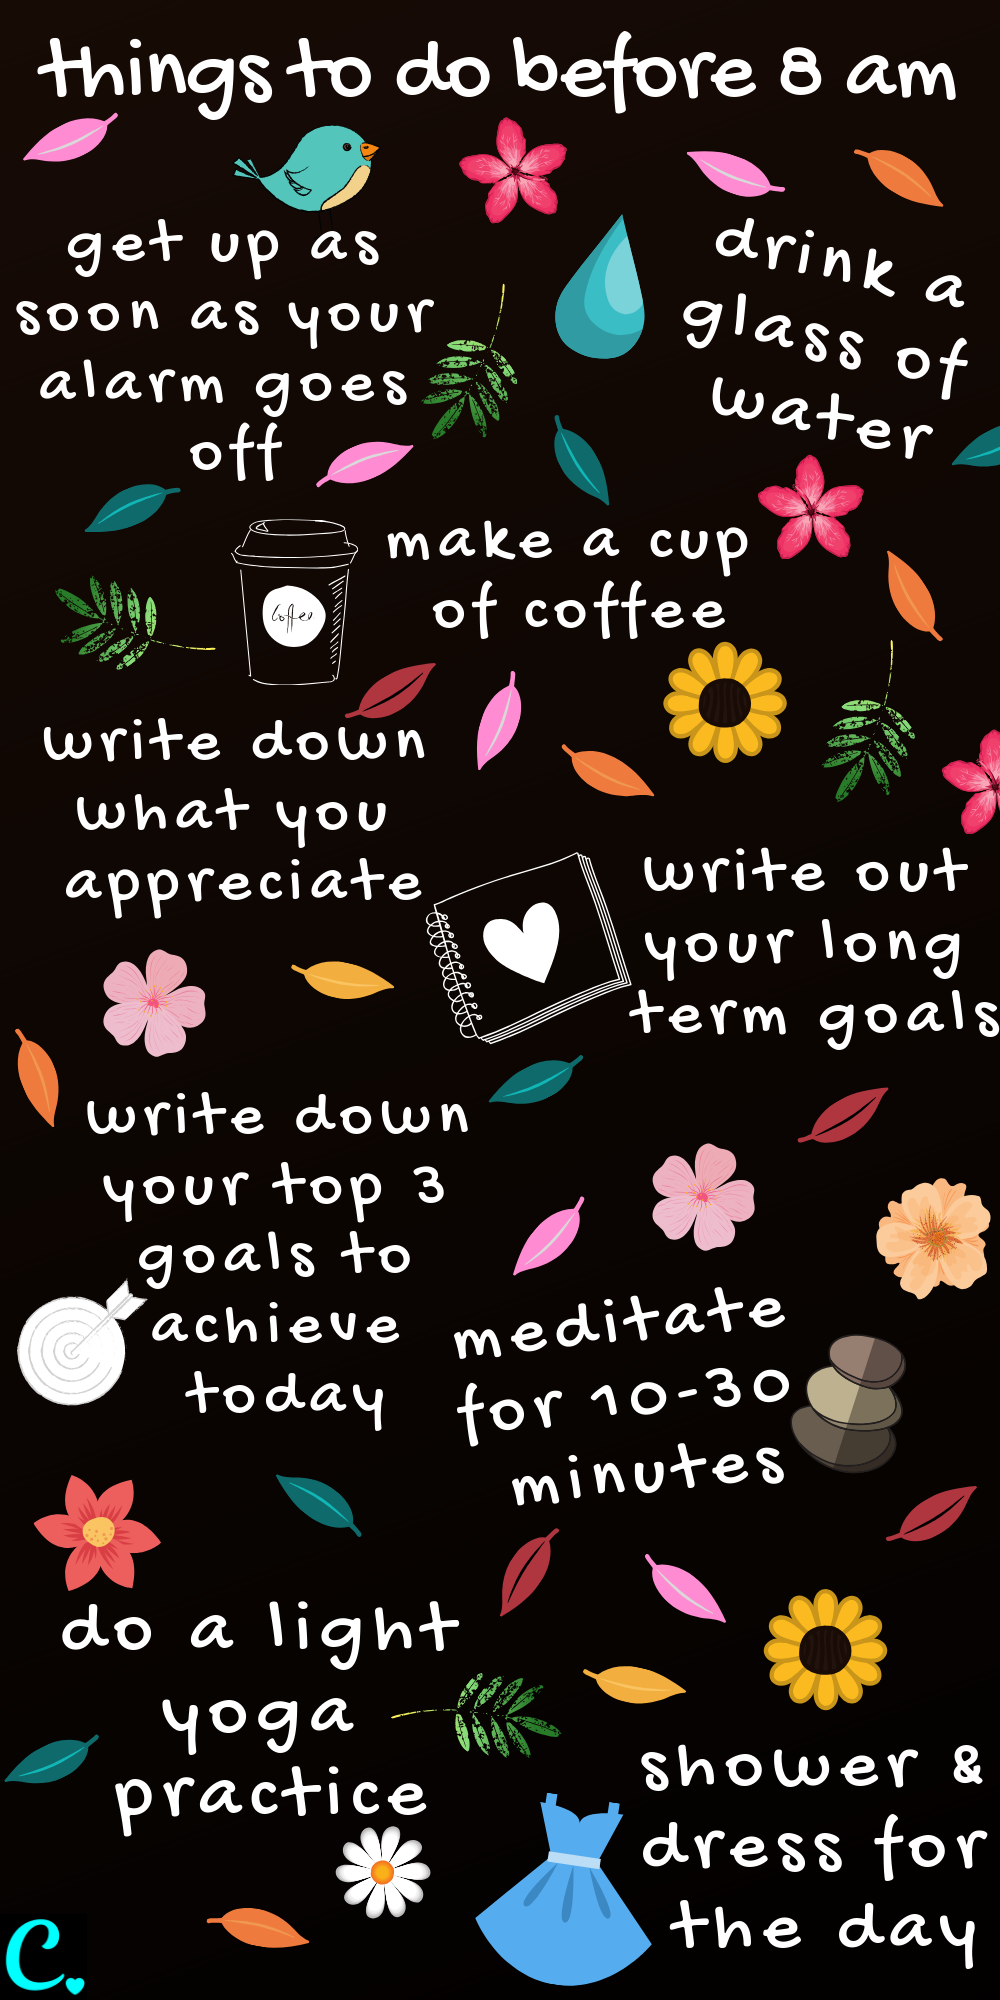 The best morning routine infographic   * things to do before 8 am   Productivity tips   habits for success   #productivityinfographic #productivity #habitsofeffectivepeople #infographic #morningroutineinfographic #healthyroutineinforgraphic #captivatingcrazy Via: https://captivatingcrazy.com